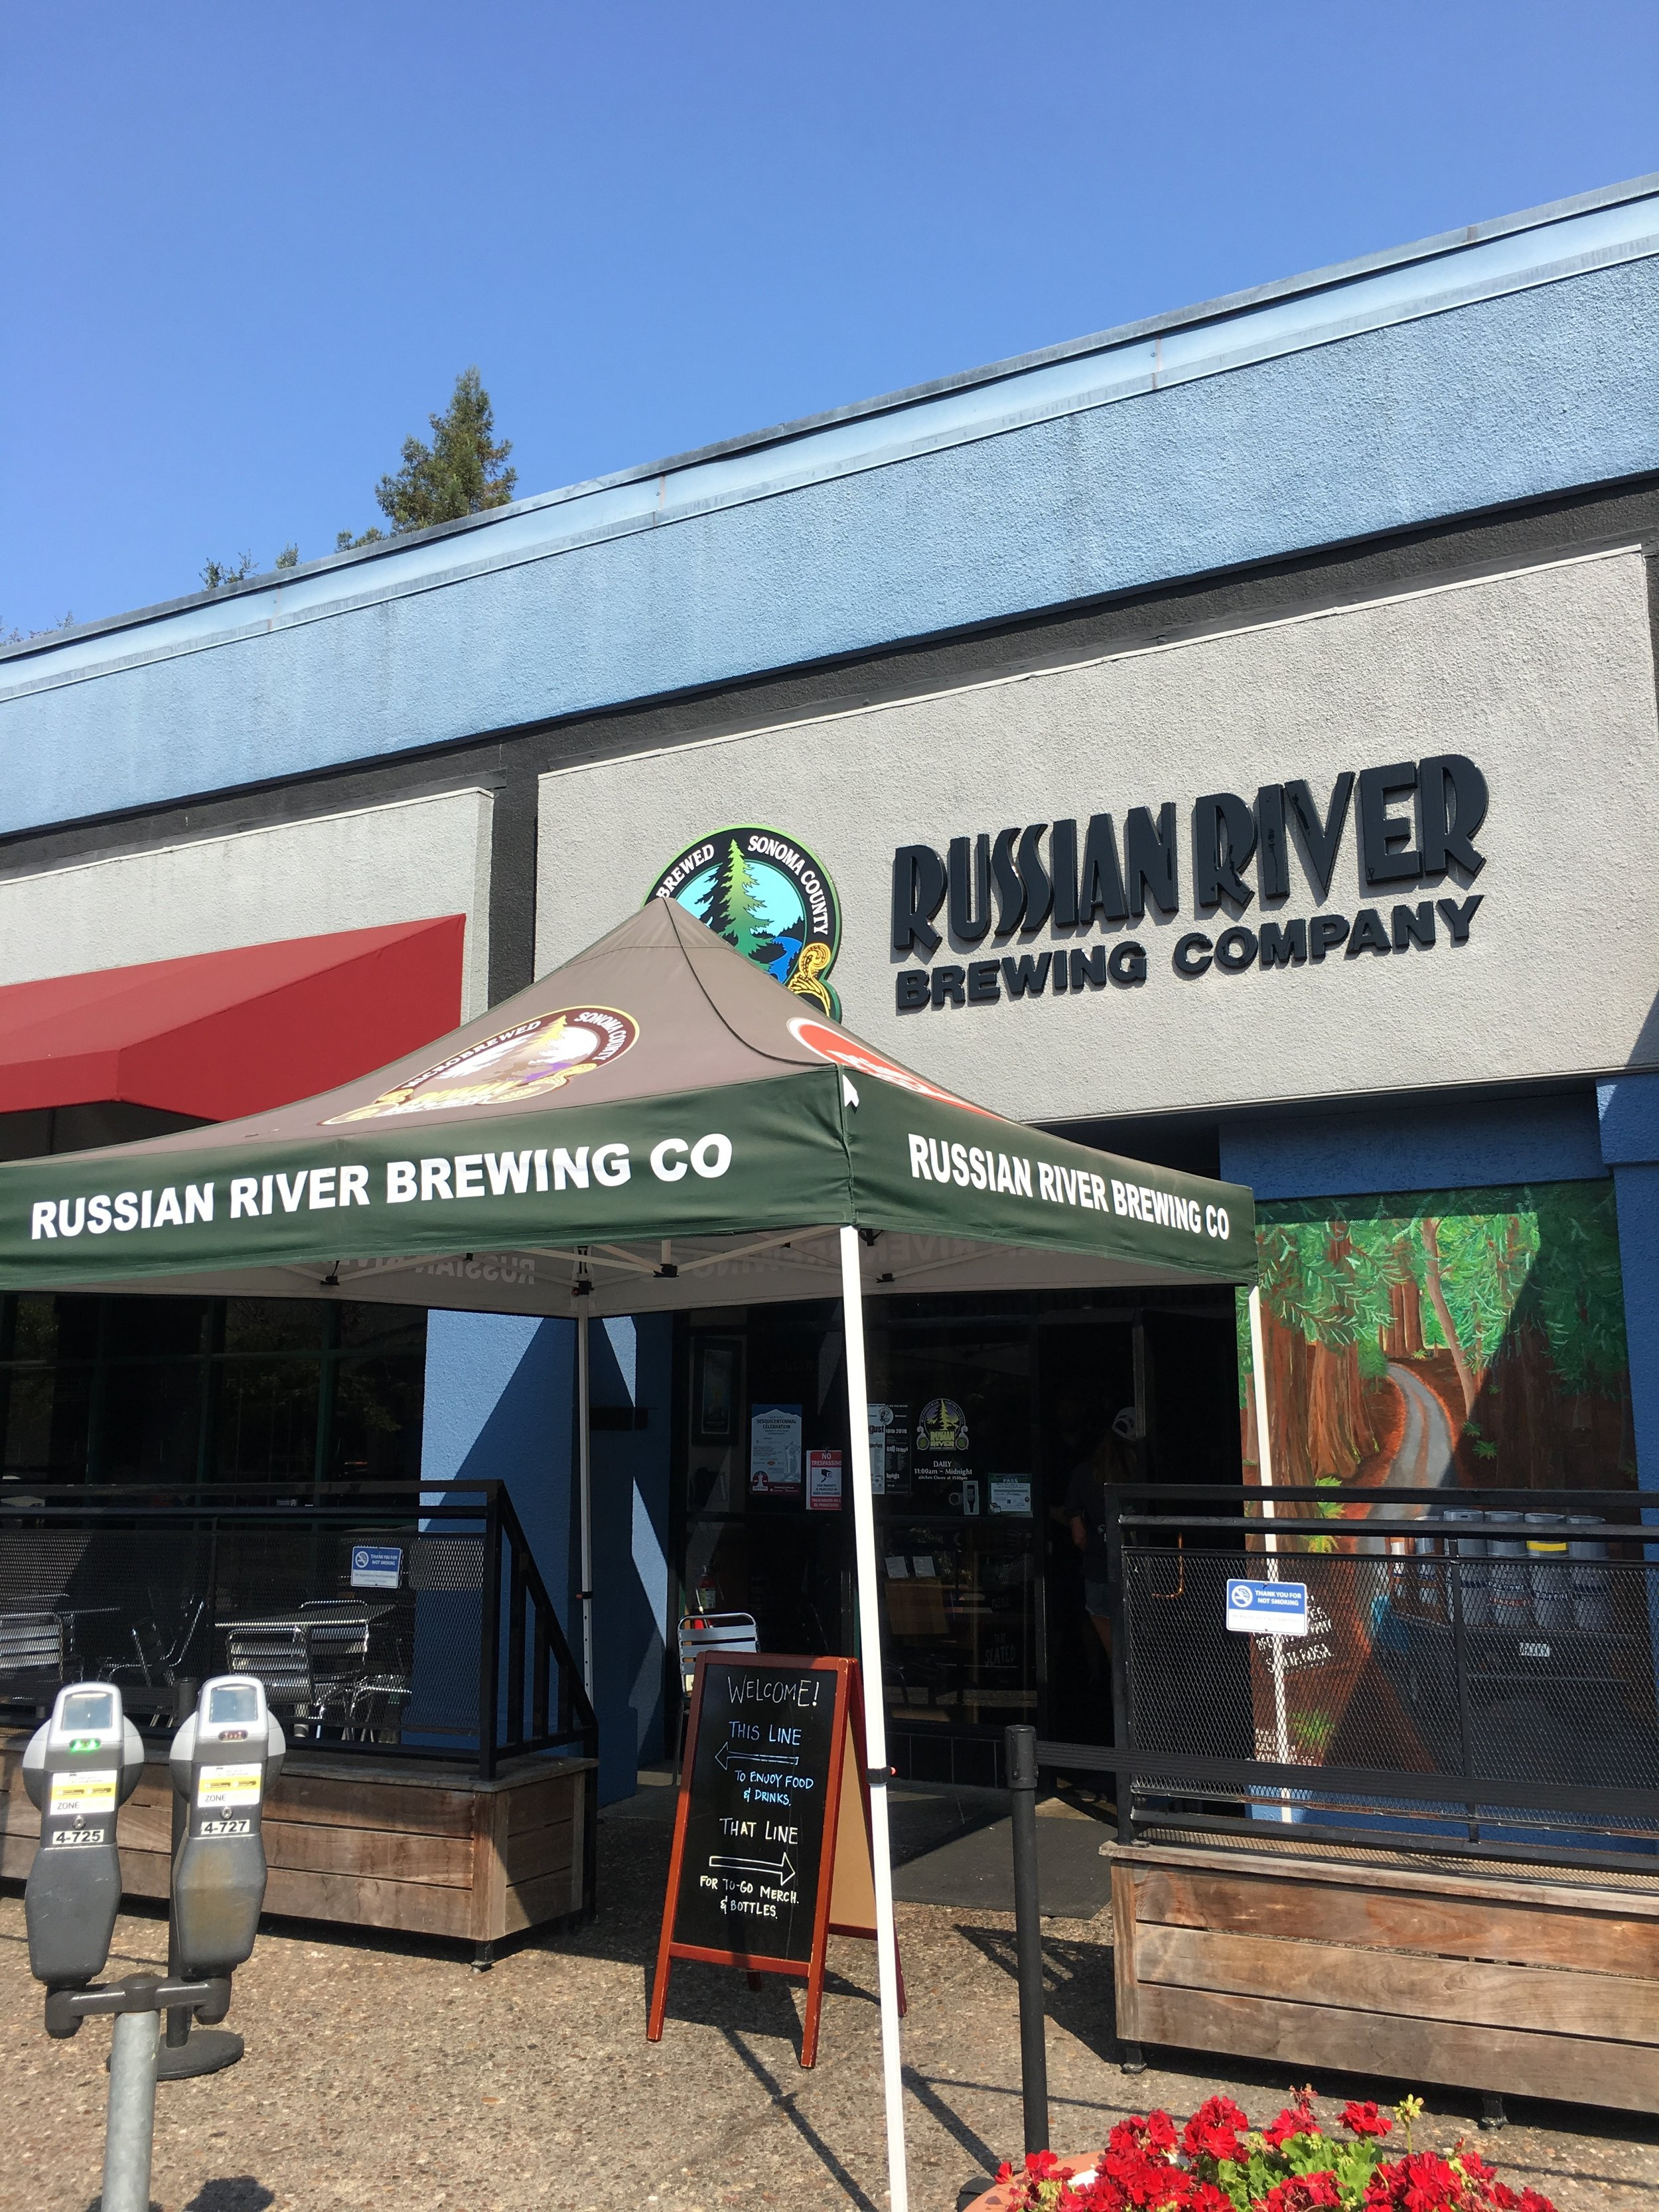 Twenty Four Hours in California Wine Country - Russian River Brewing Company